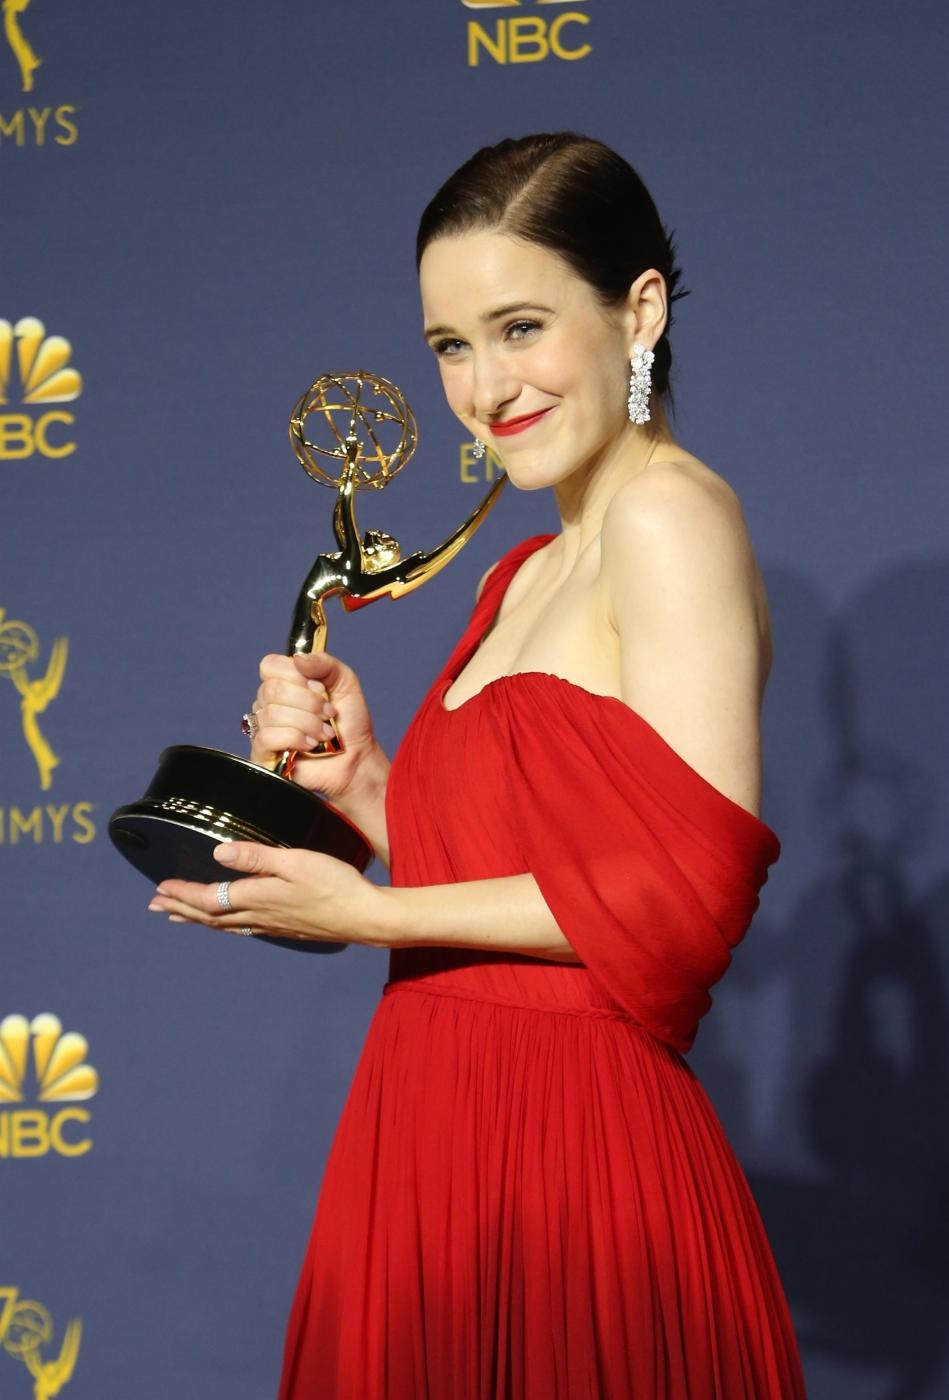 Emmy Awards, trionfa Mrs Maisel di Amazon, Game of Thrones salva l'onore